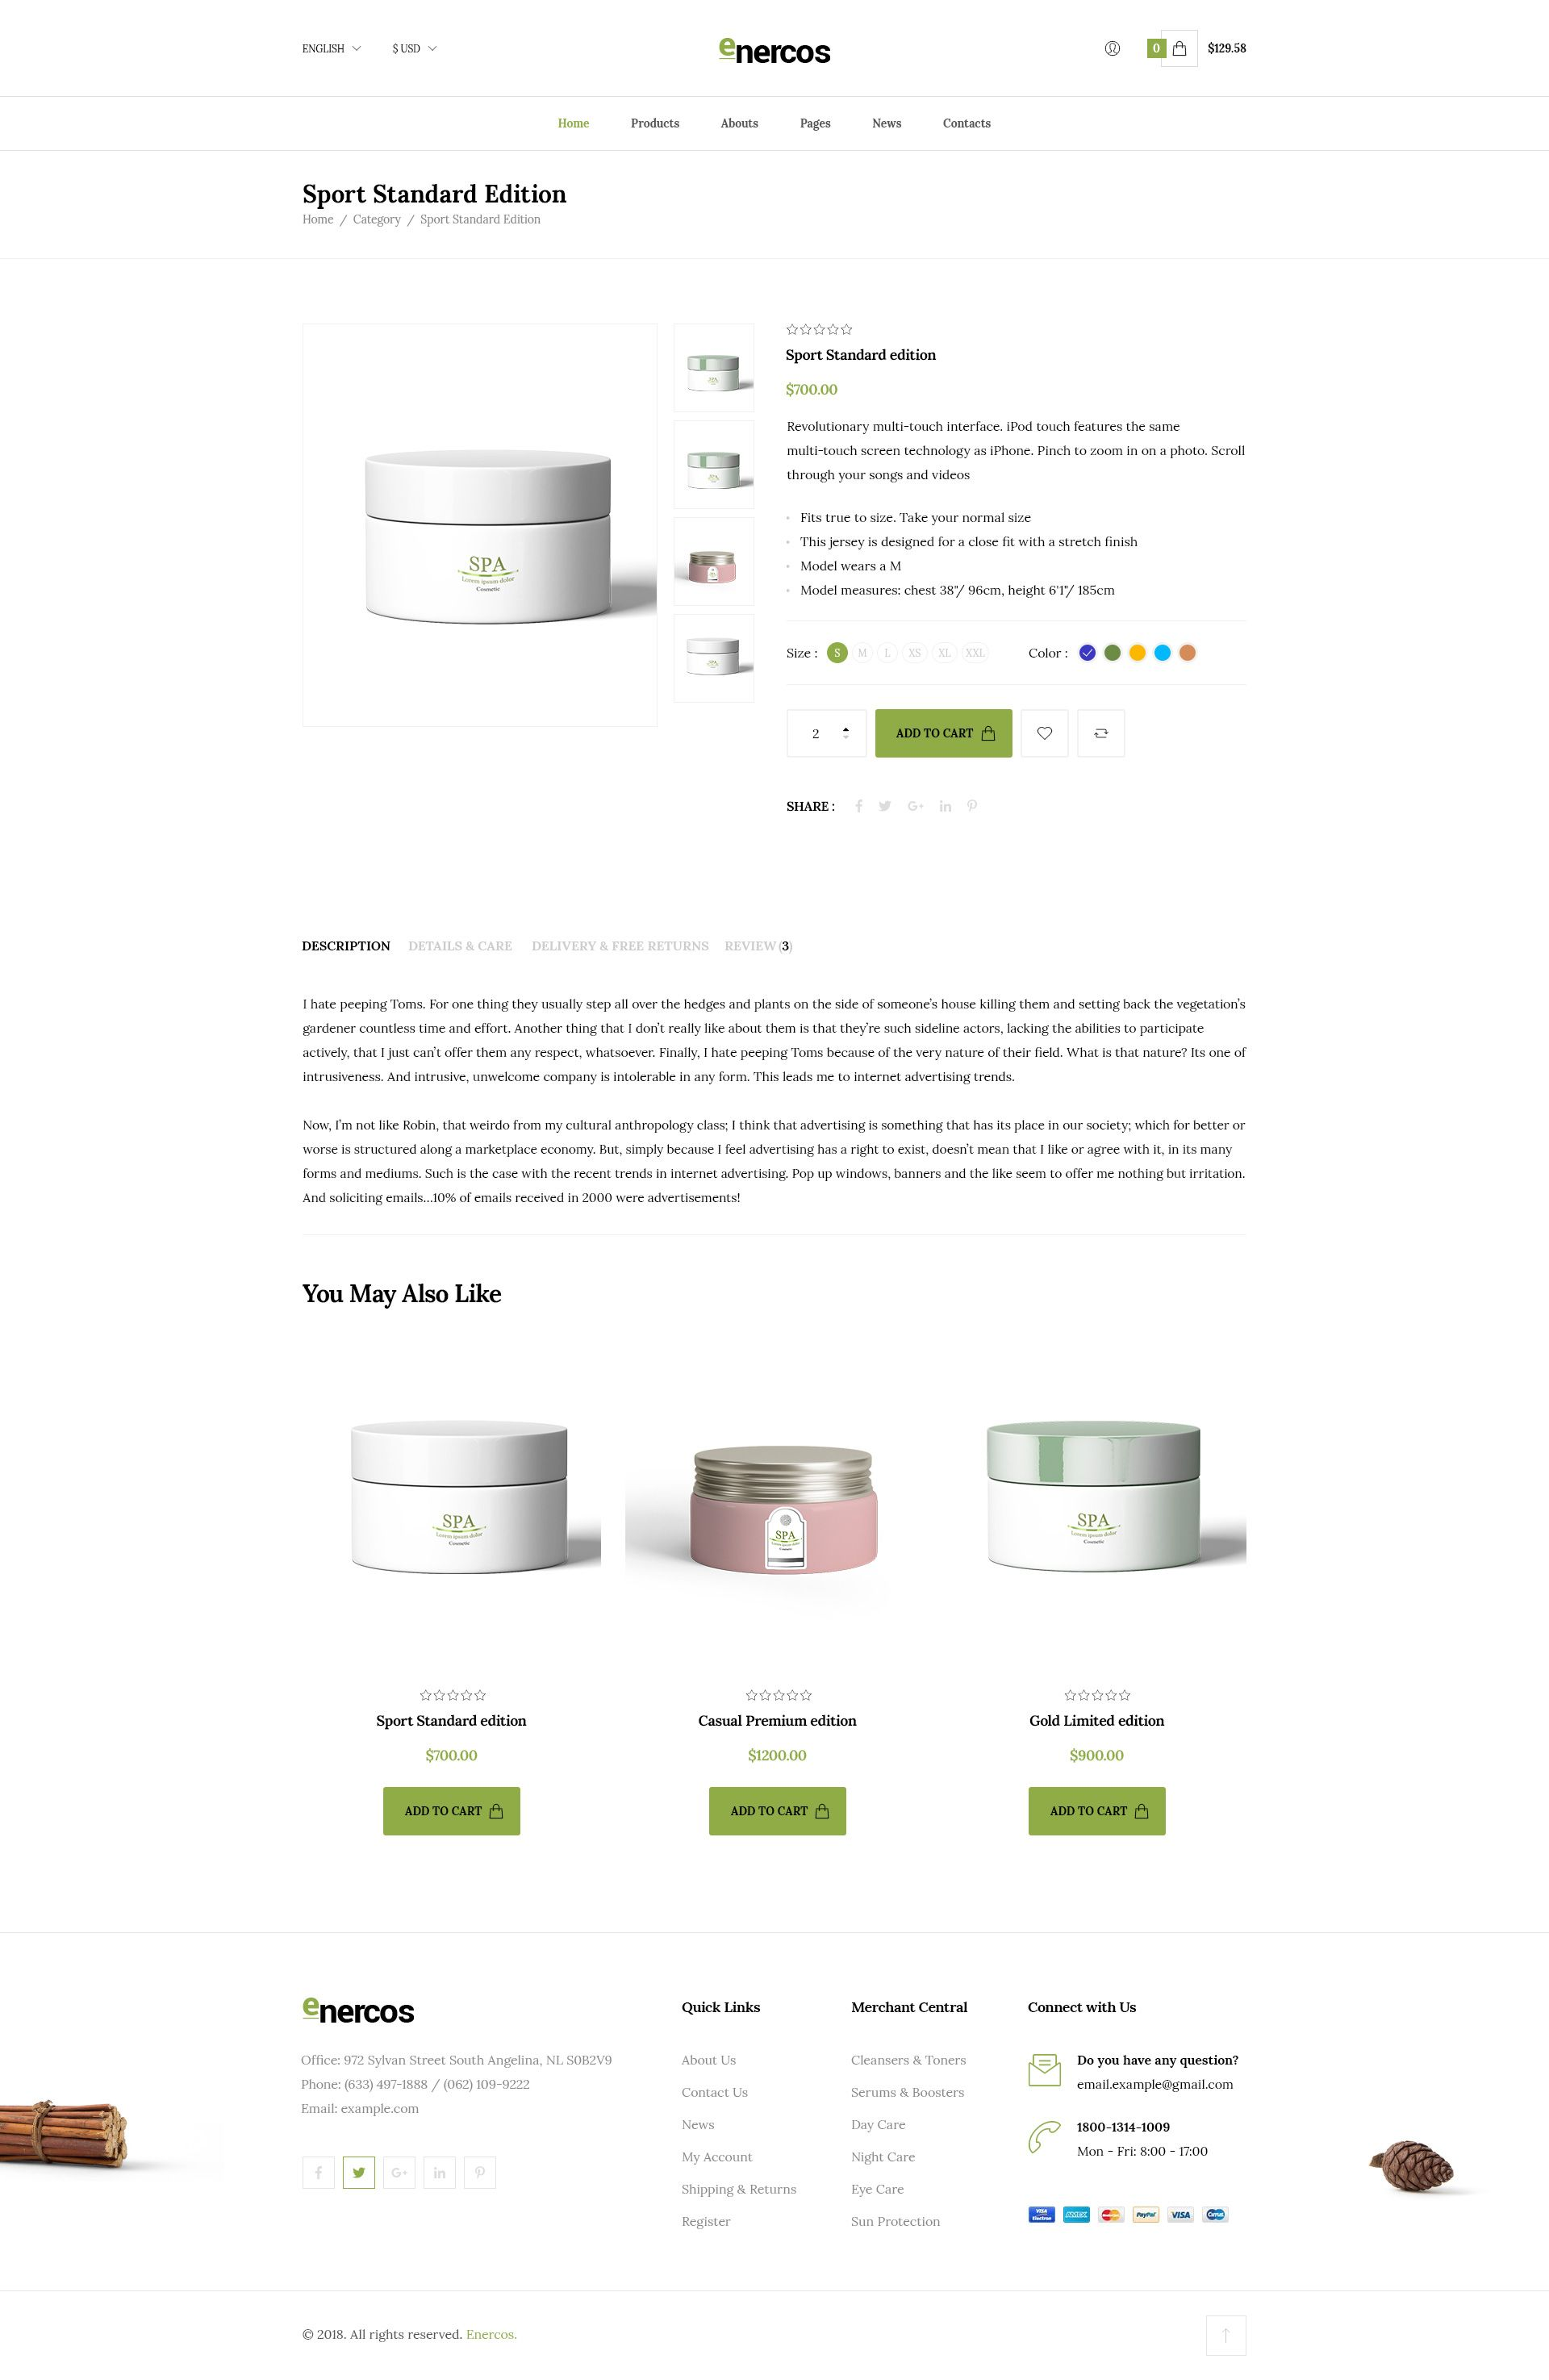 Enercos - Single Product eCommerce HTML5 Template Screenshot 7